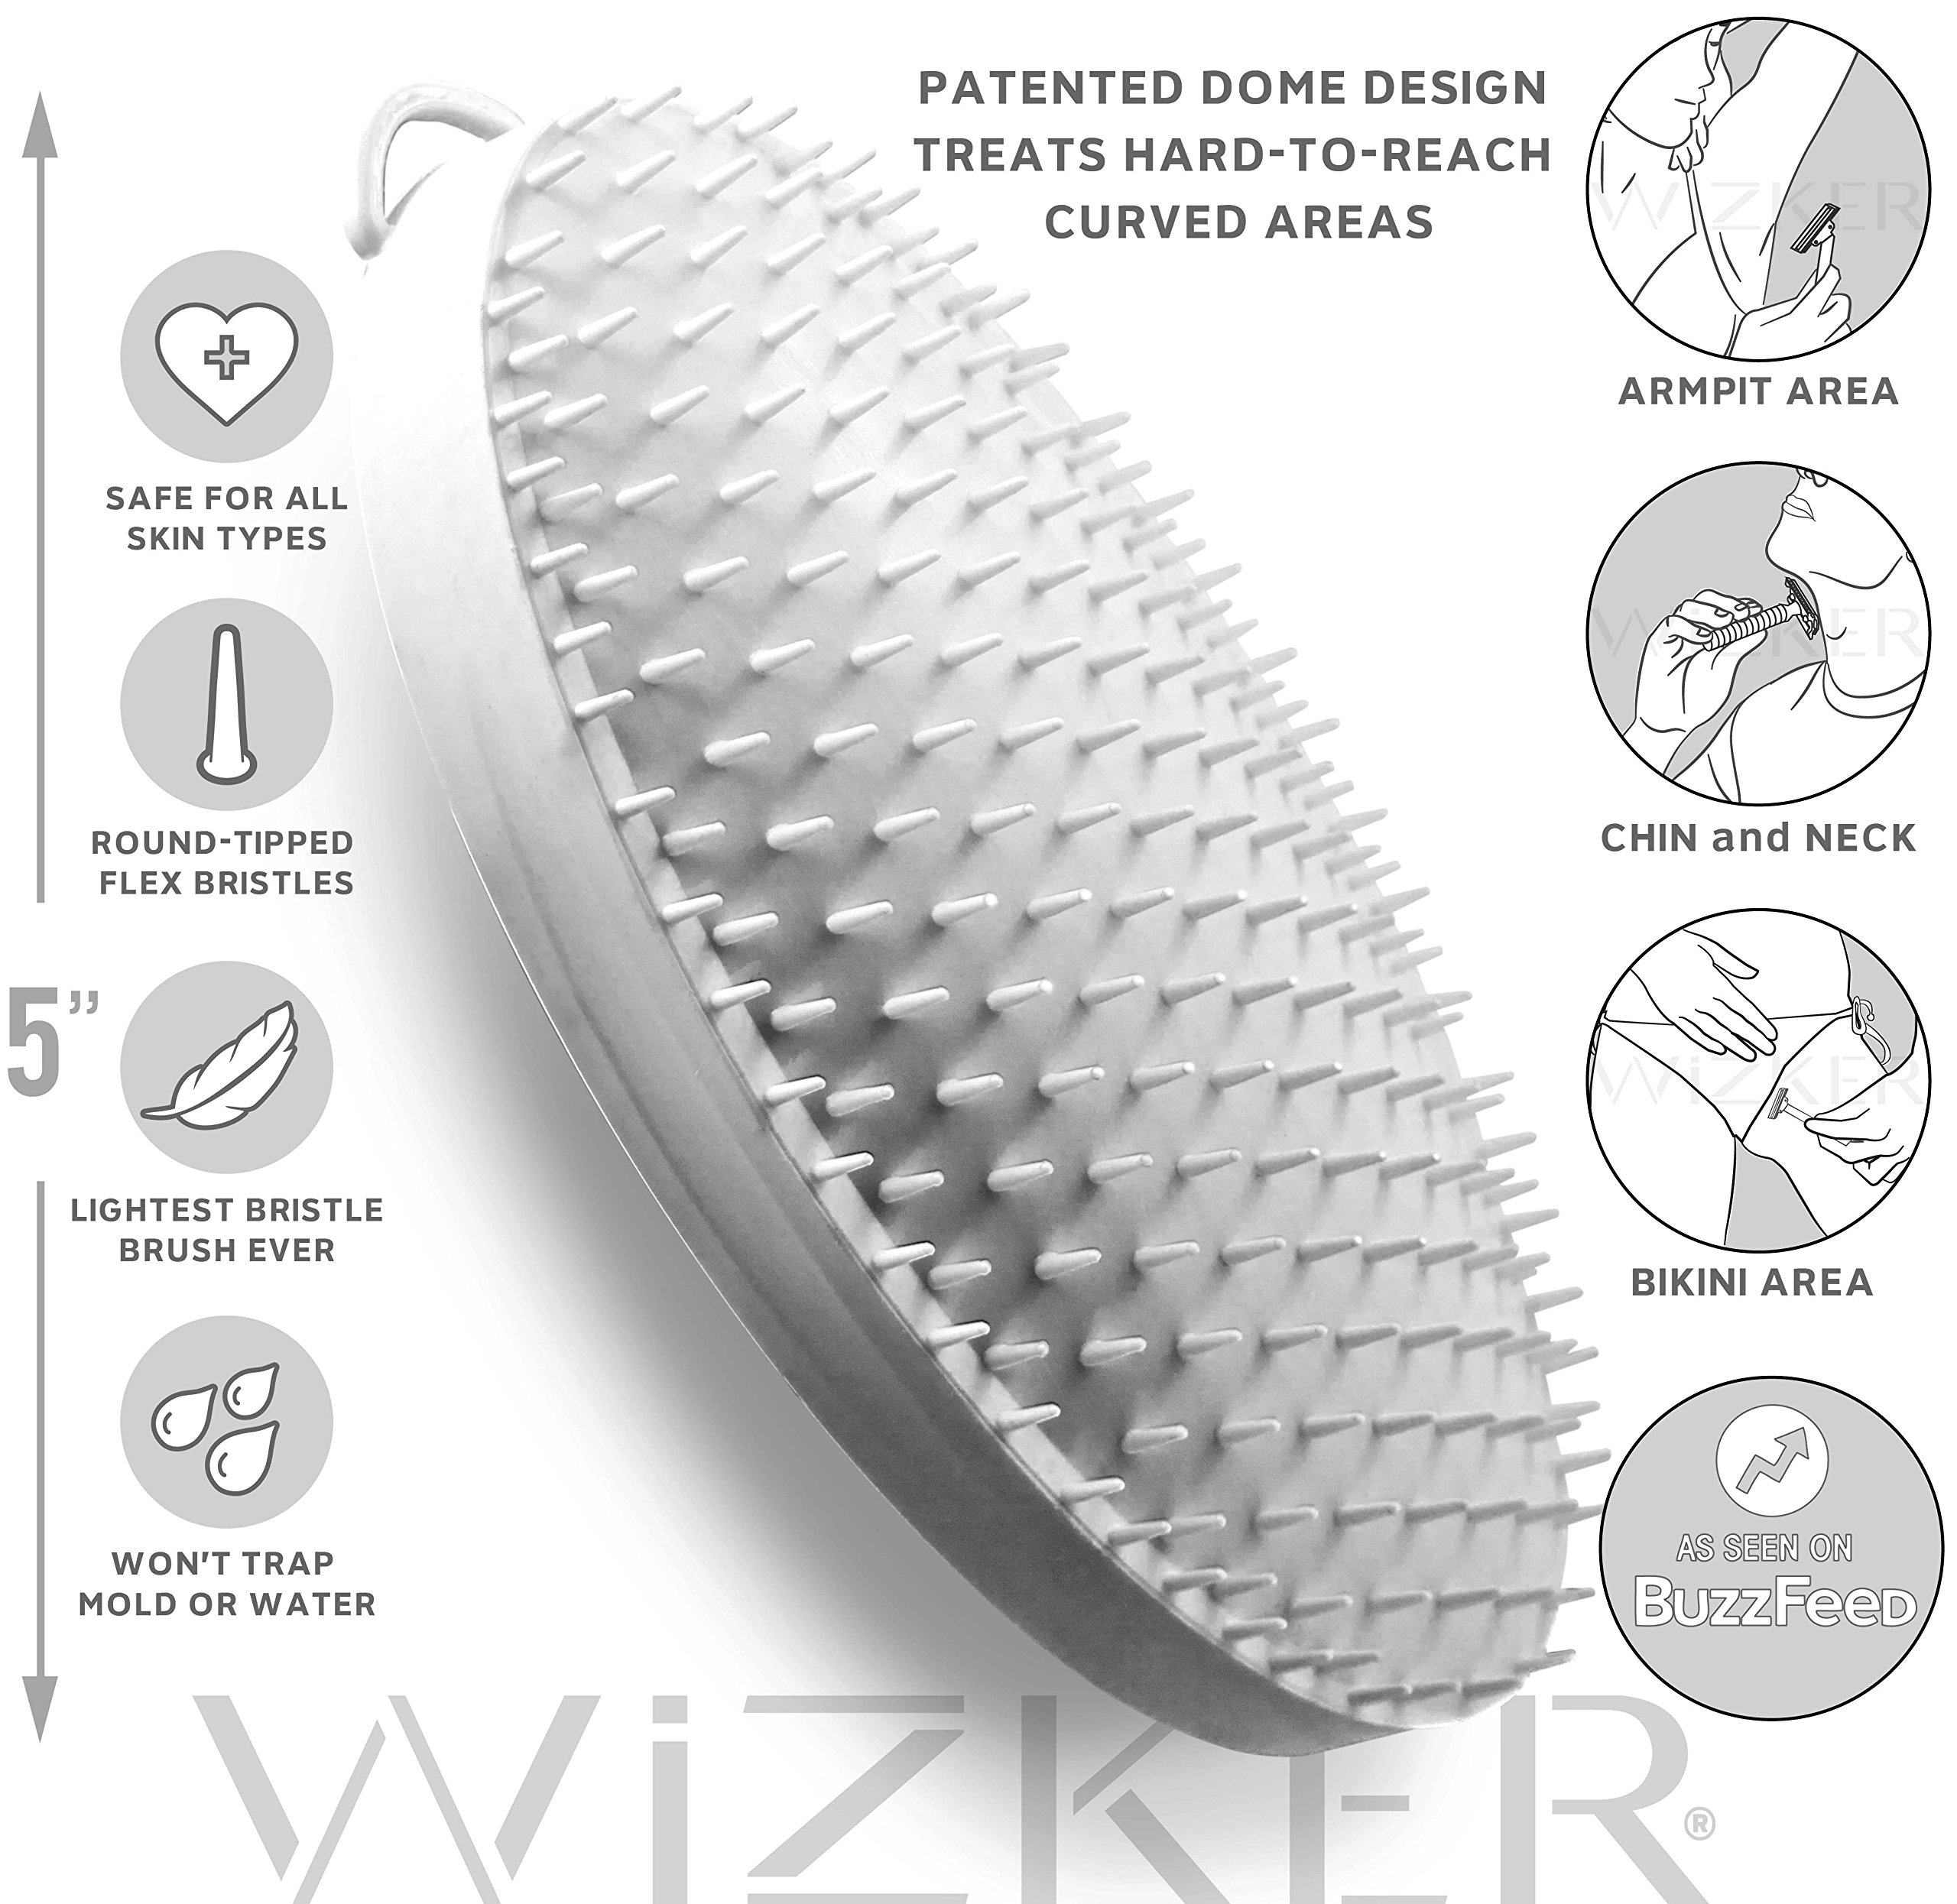 Wizker Brush The Original Ingrown Hair Brush Eliminates Razor Bumps